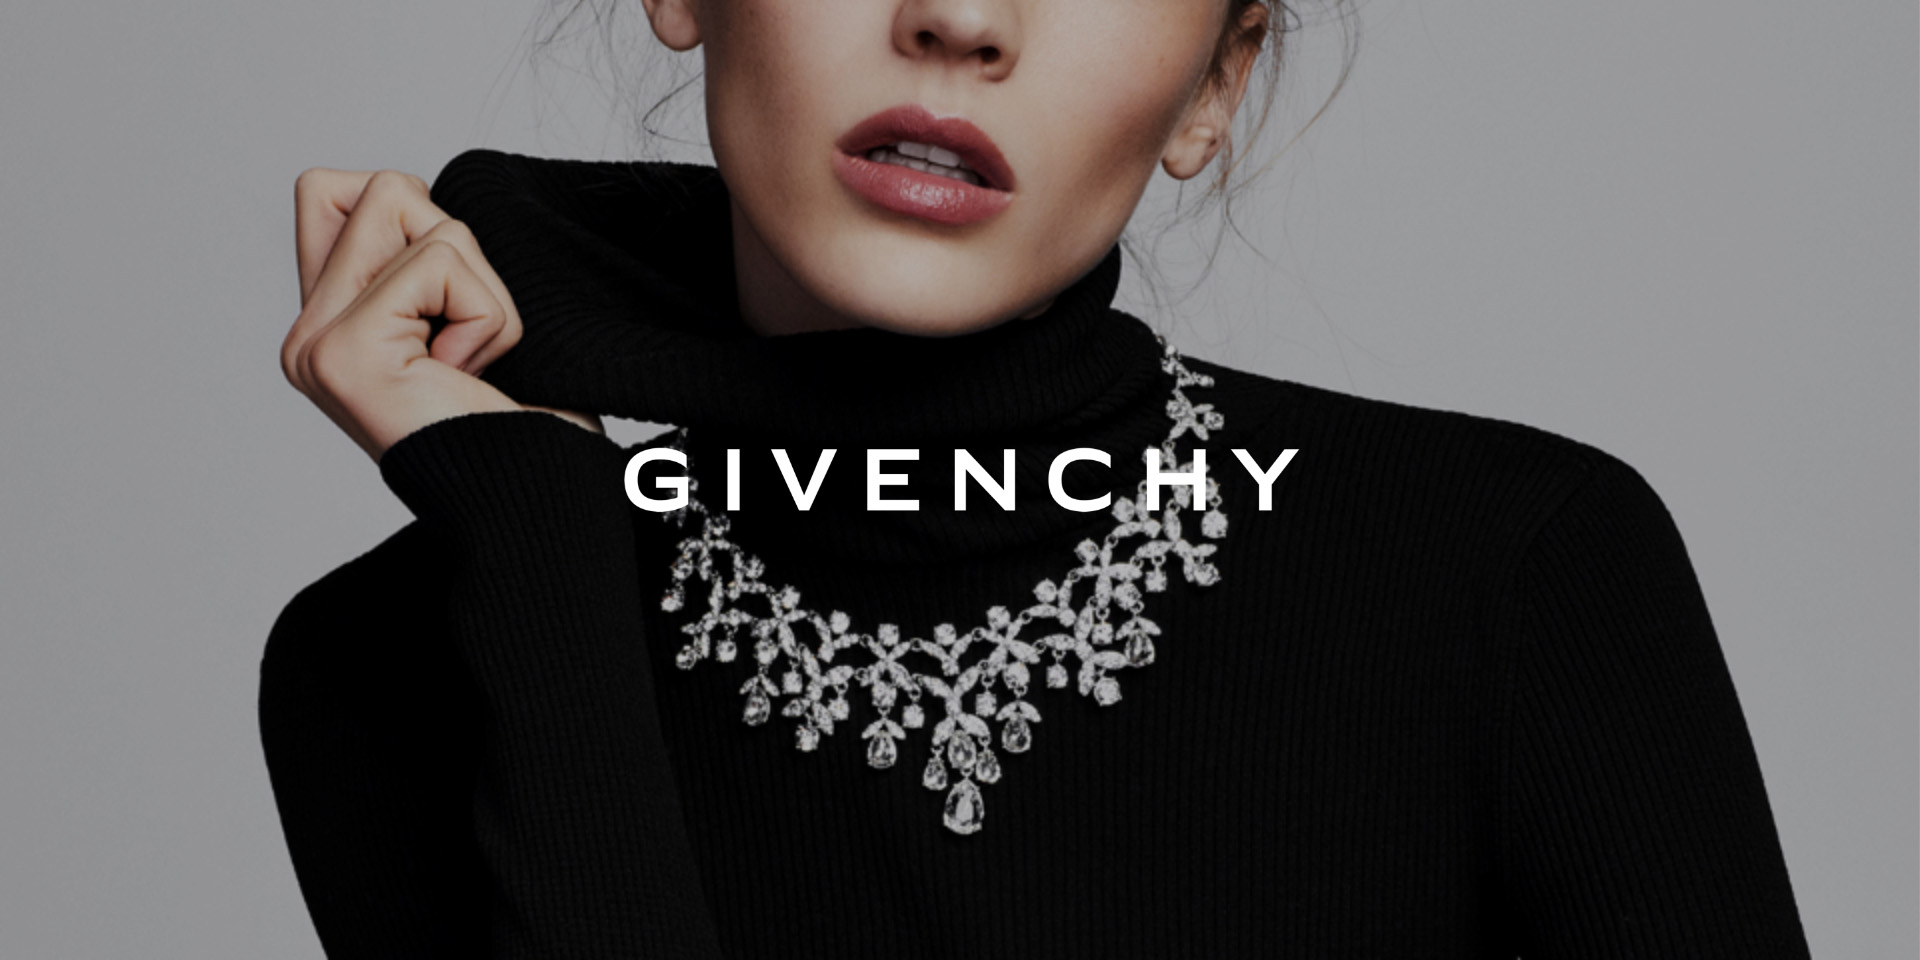 Brand logo of Givenchy